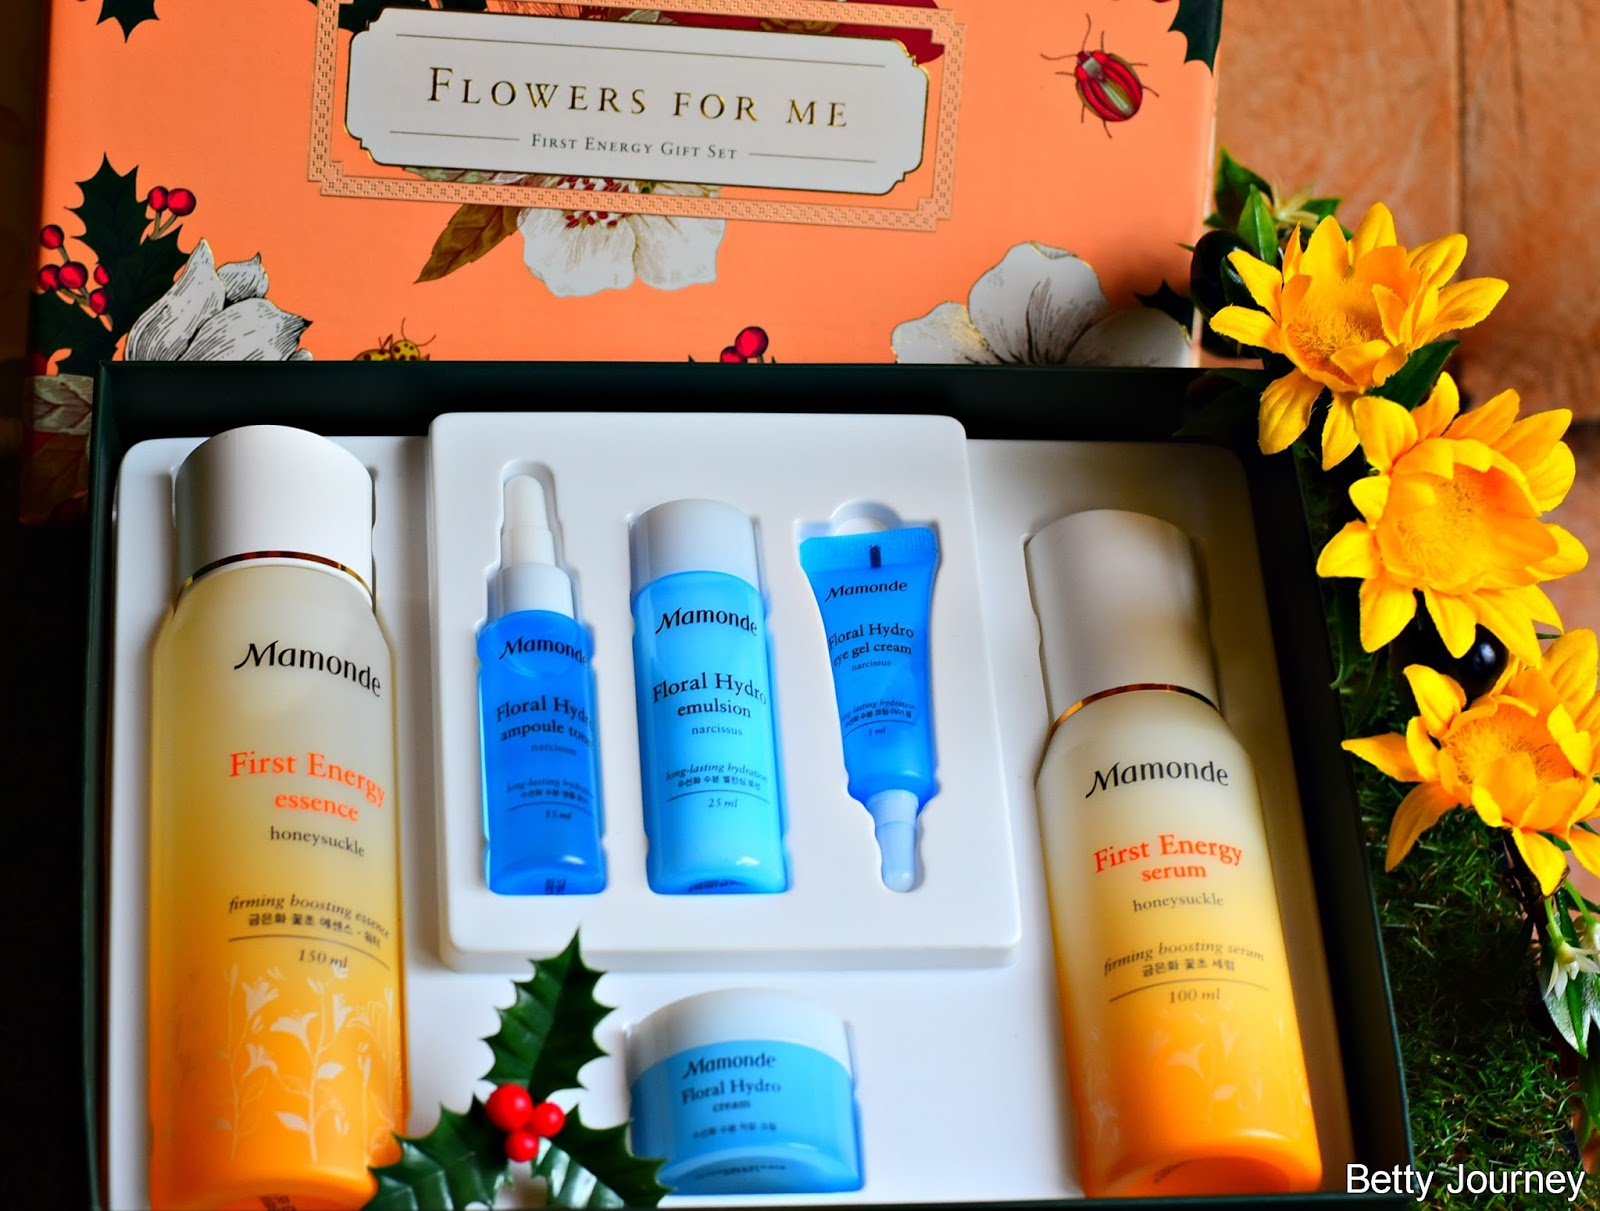 Mamonde Presents Flower For Me Holiday Collection 2017 Bettys Bagus Umbrella Medium Light Blue First Of All I Am Impressed With Their Attractive Packaging As The Beautiful Boxes Is Printed Vibrant Graphics Garden In Harmony